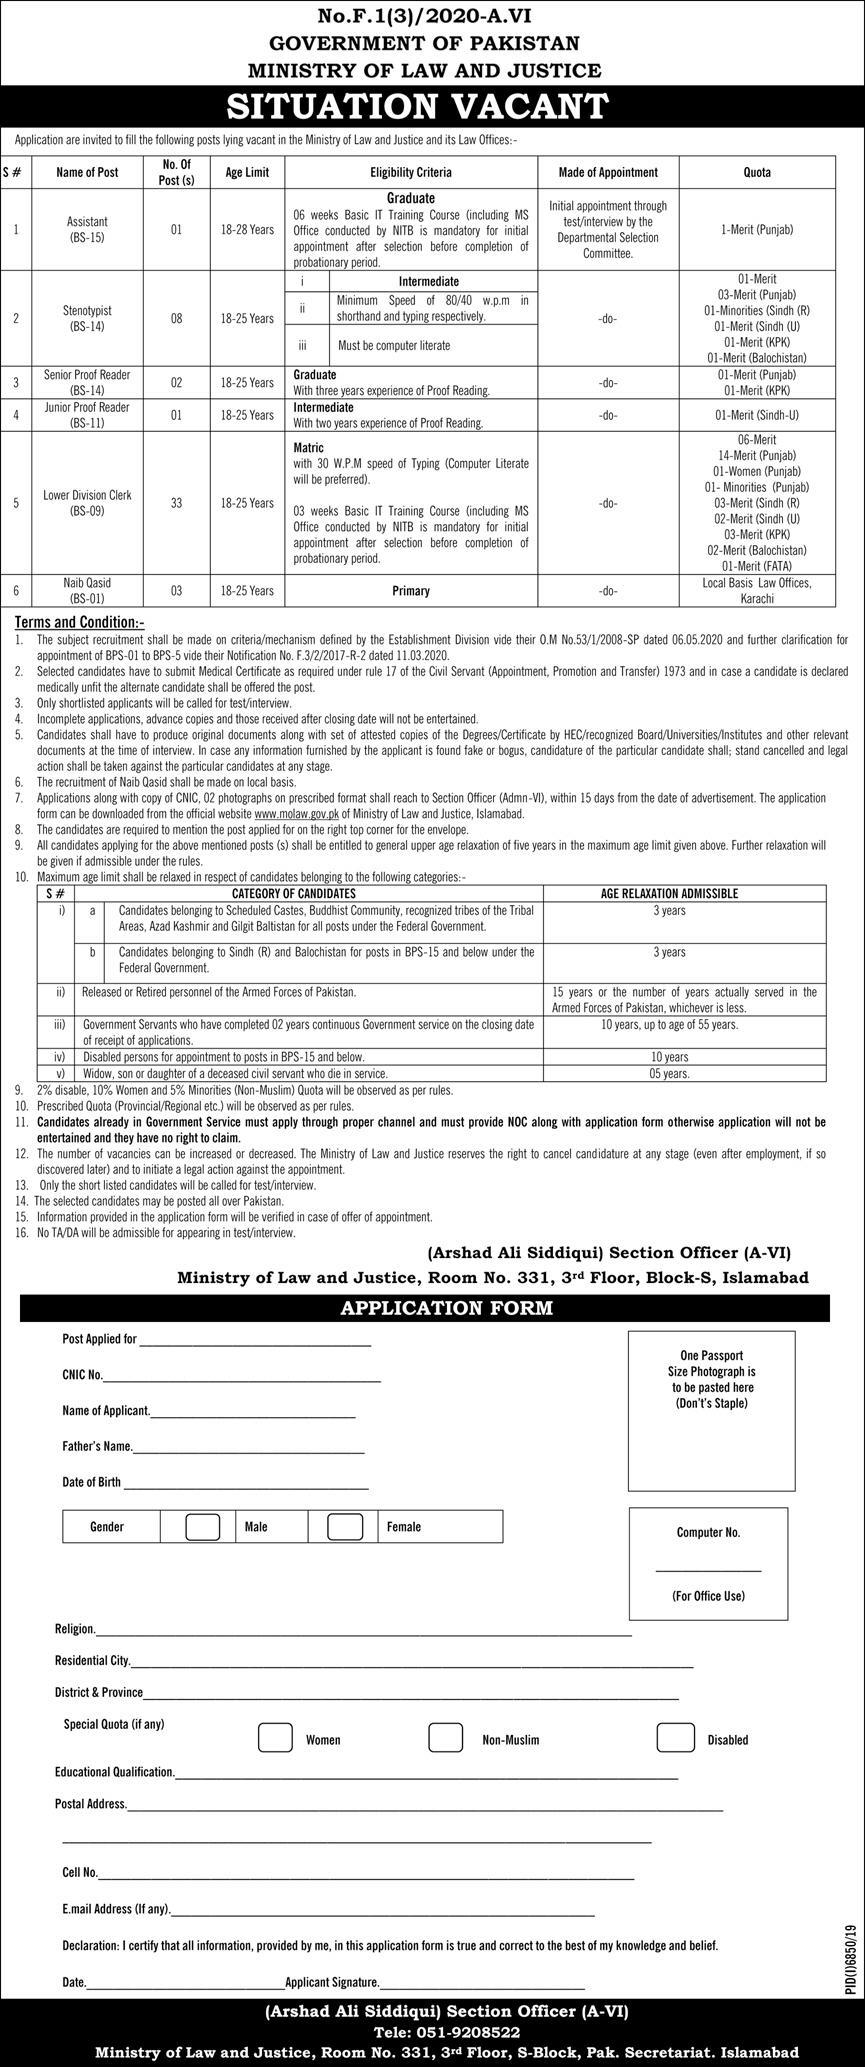 Government of Pakistan Ministry of Law and Justice Jobs June 2020